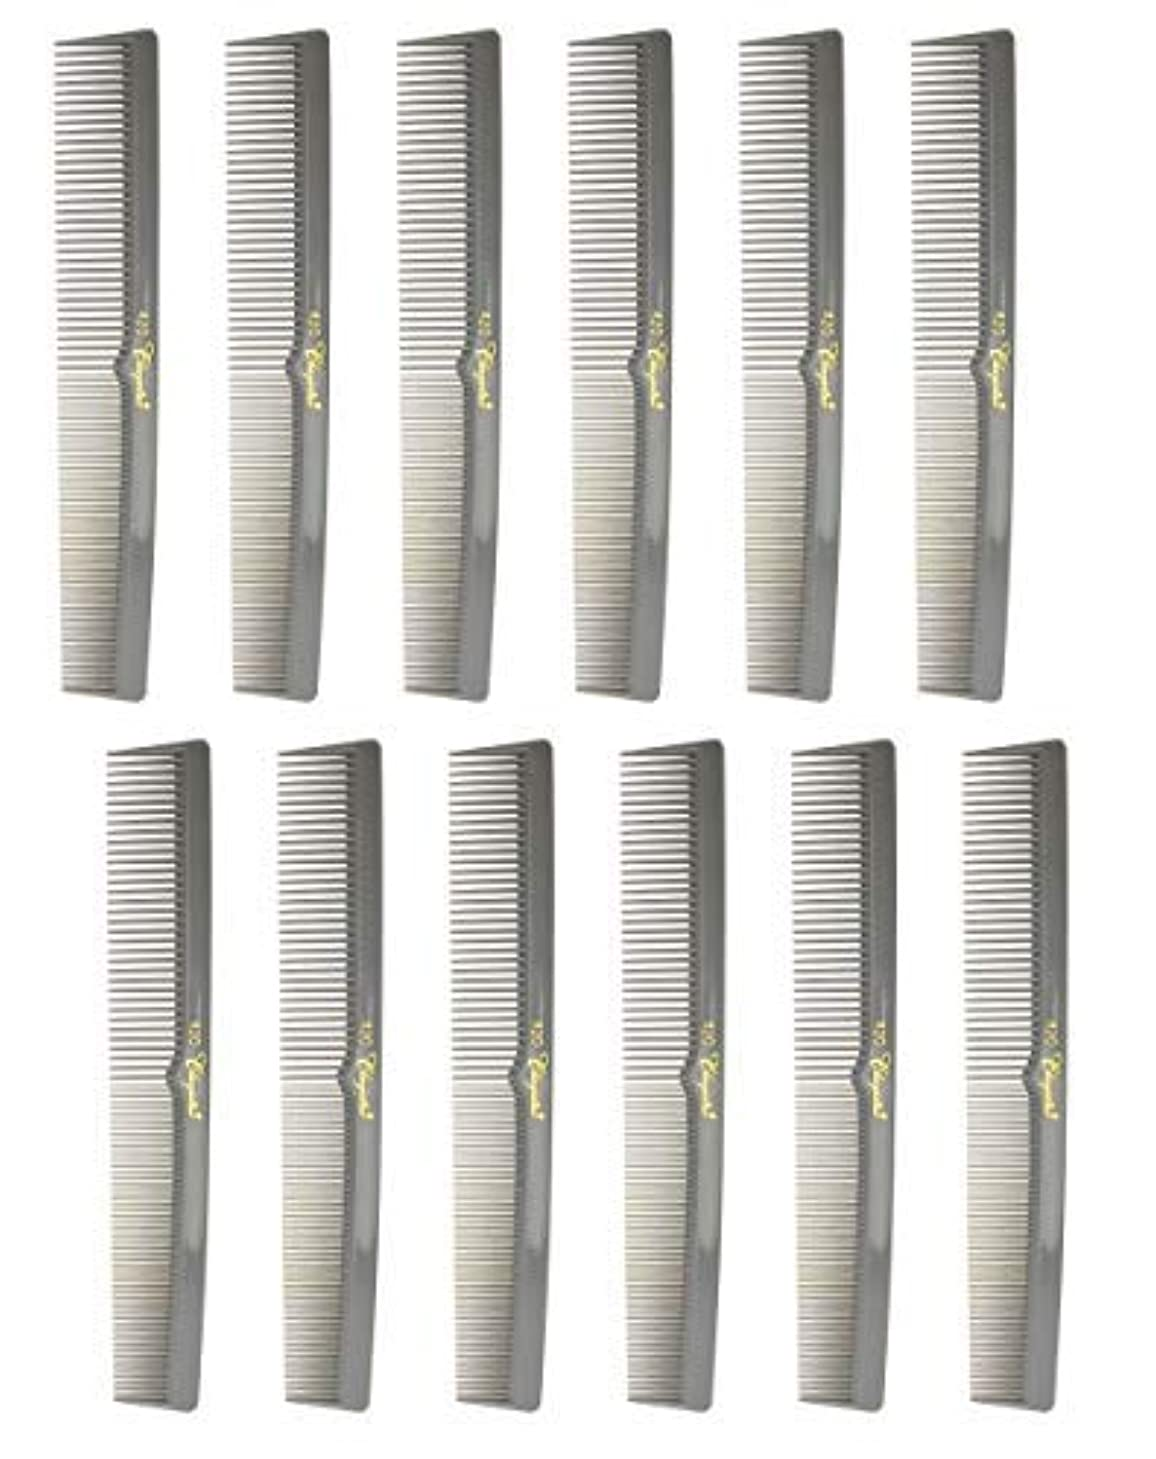 マグテラス古い7 Inch Hair Cutting Combs. Barber's & Hairstylist Combs. Gray. 1 DZ. [並行輸入品]